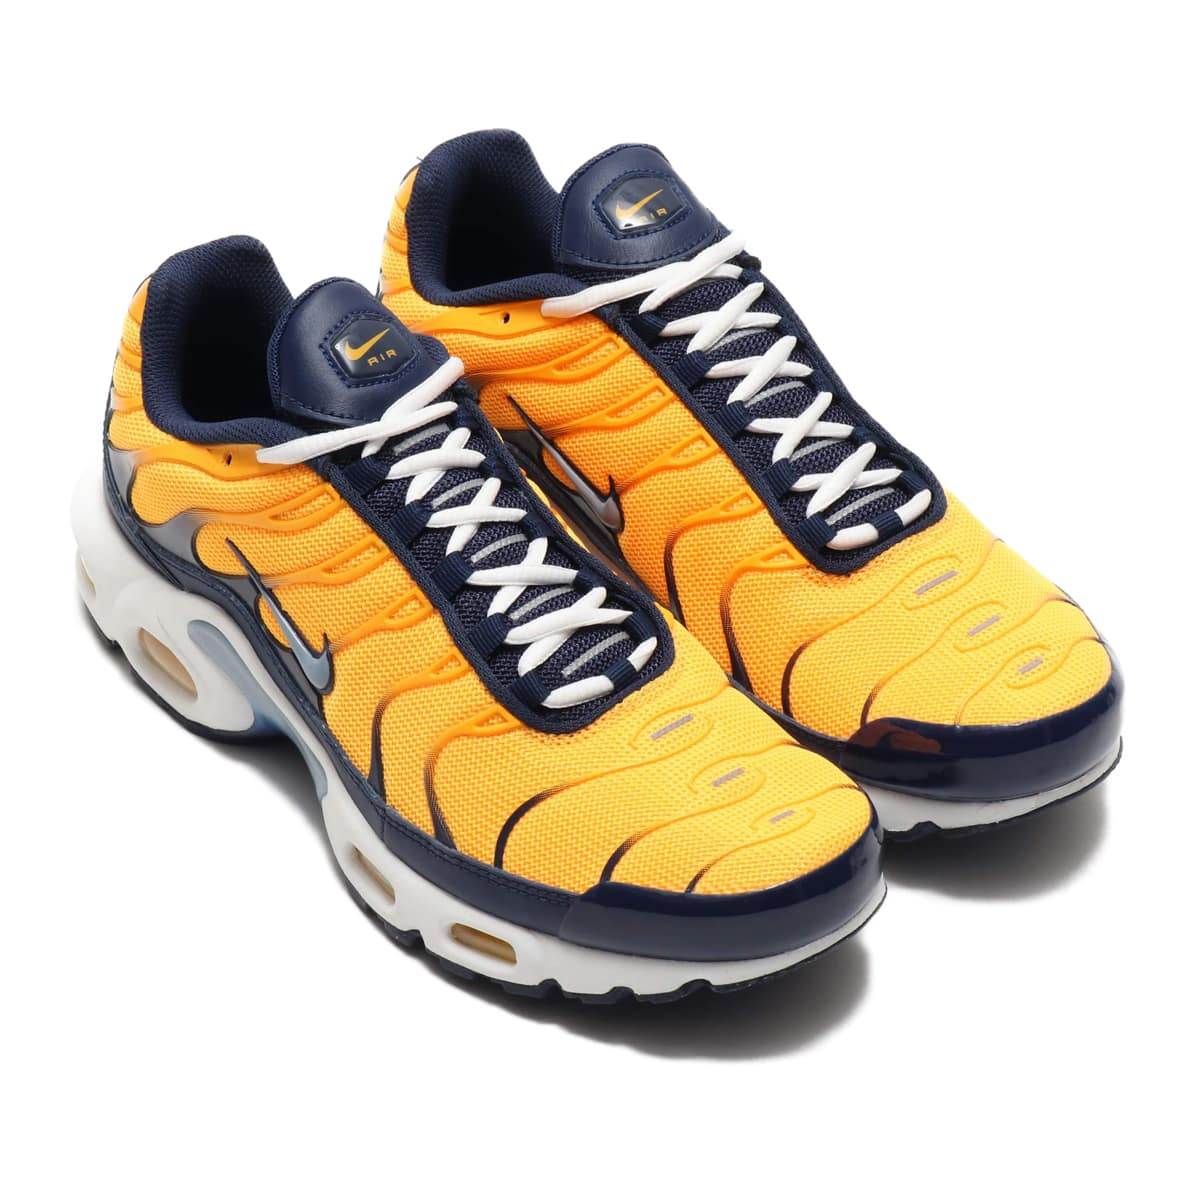 NIKE AIR MAX PLUS SE LSR ORNG/OBSDN MST-MID NVY-WHT 19SU-S_photo_large